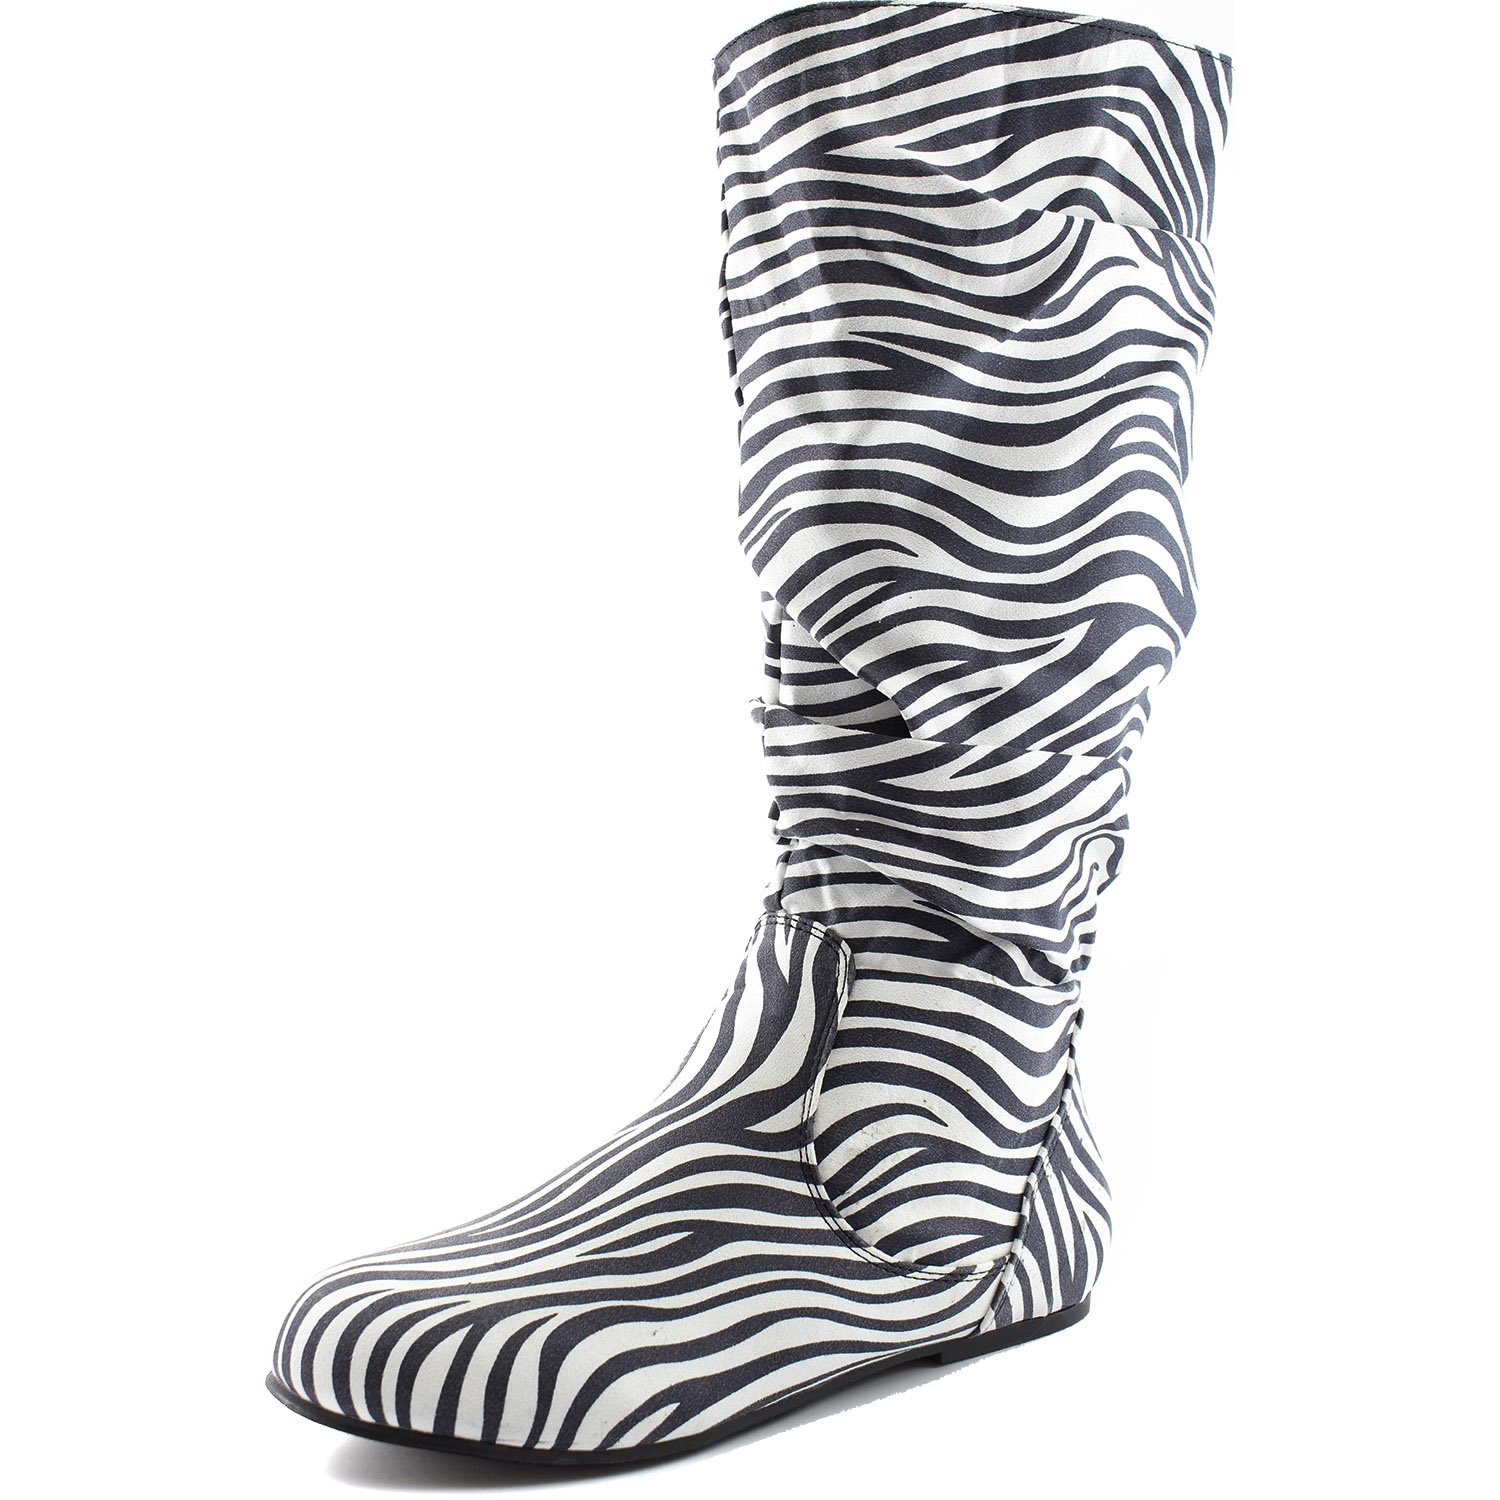 Dailyshoes Women's Mid Calf Zipper Slouch Suede Comfortable Boots B00MX8AO12 6.5 B(M) US|Zebra Seude